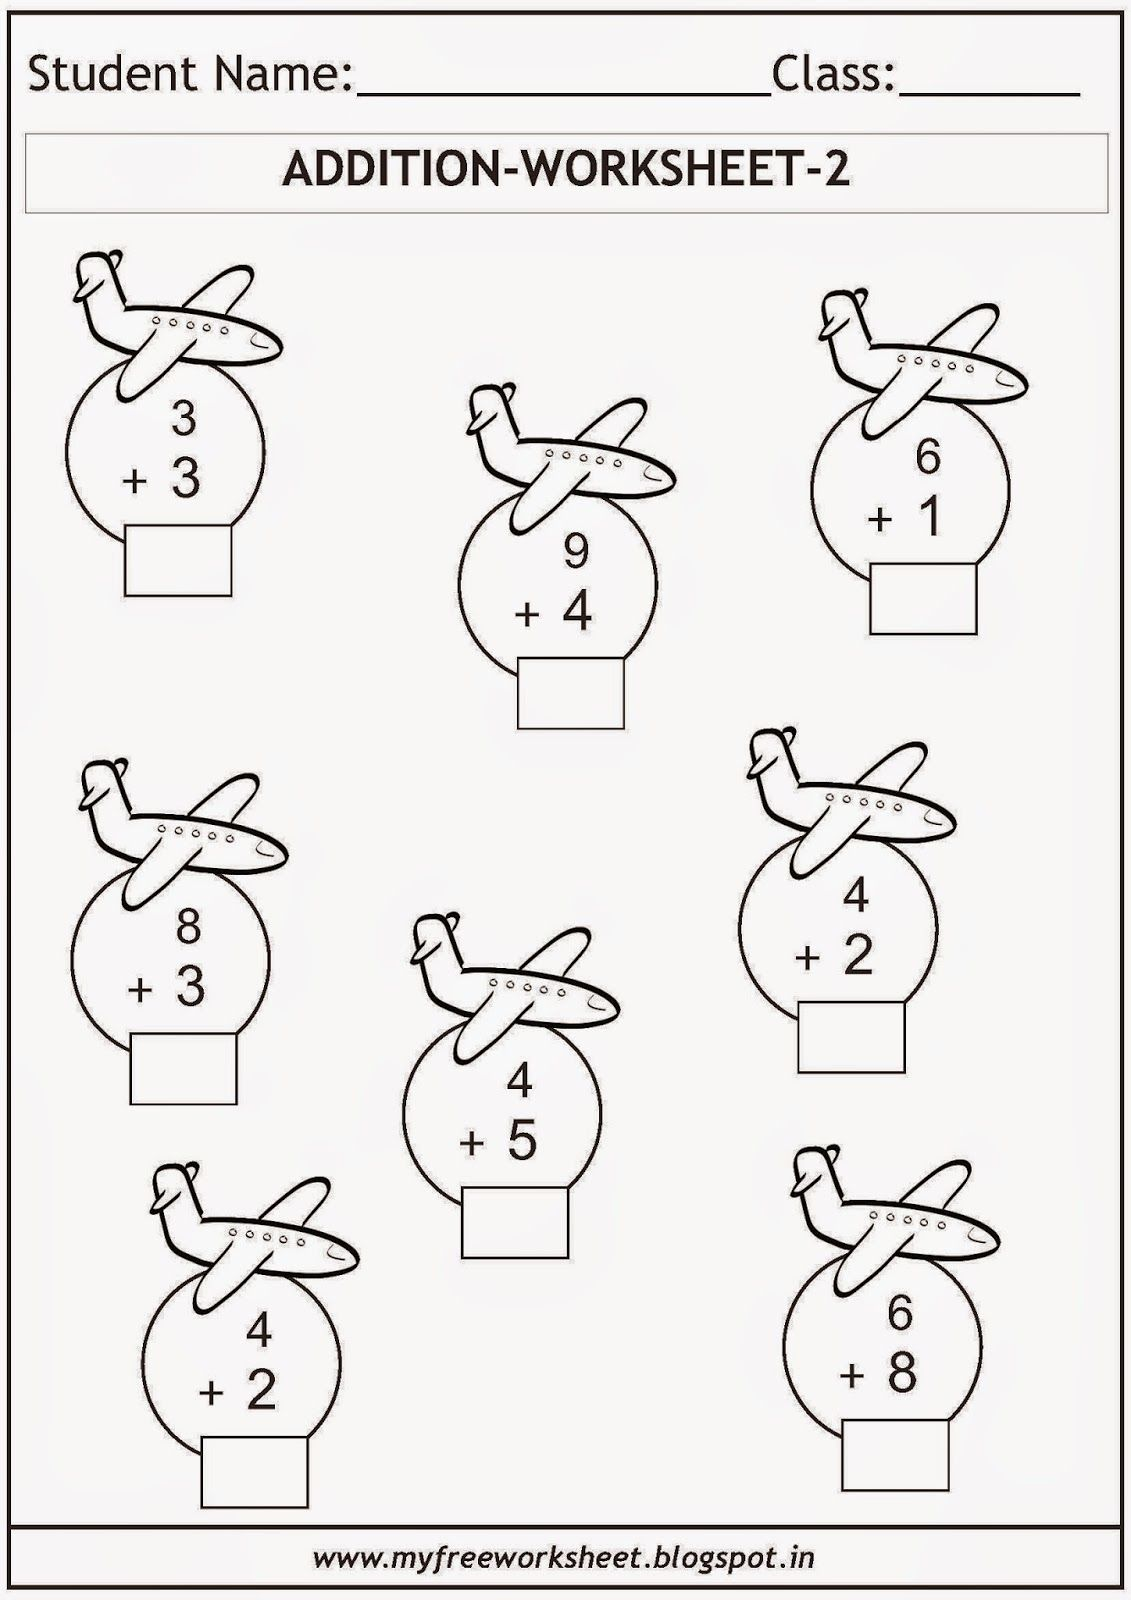 Free printable math worksheets for grade 1 kids. Includes a variety ...